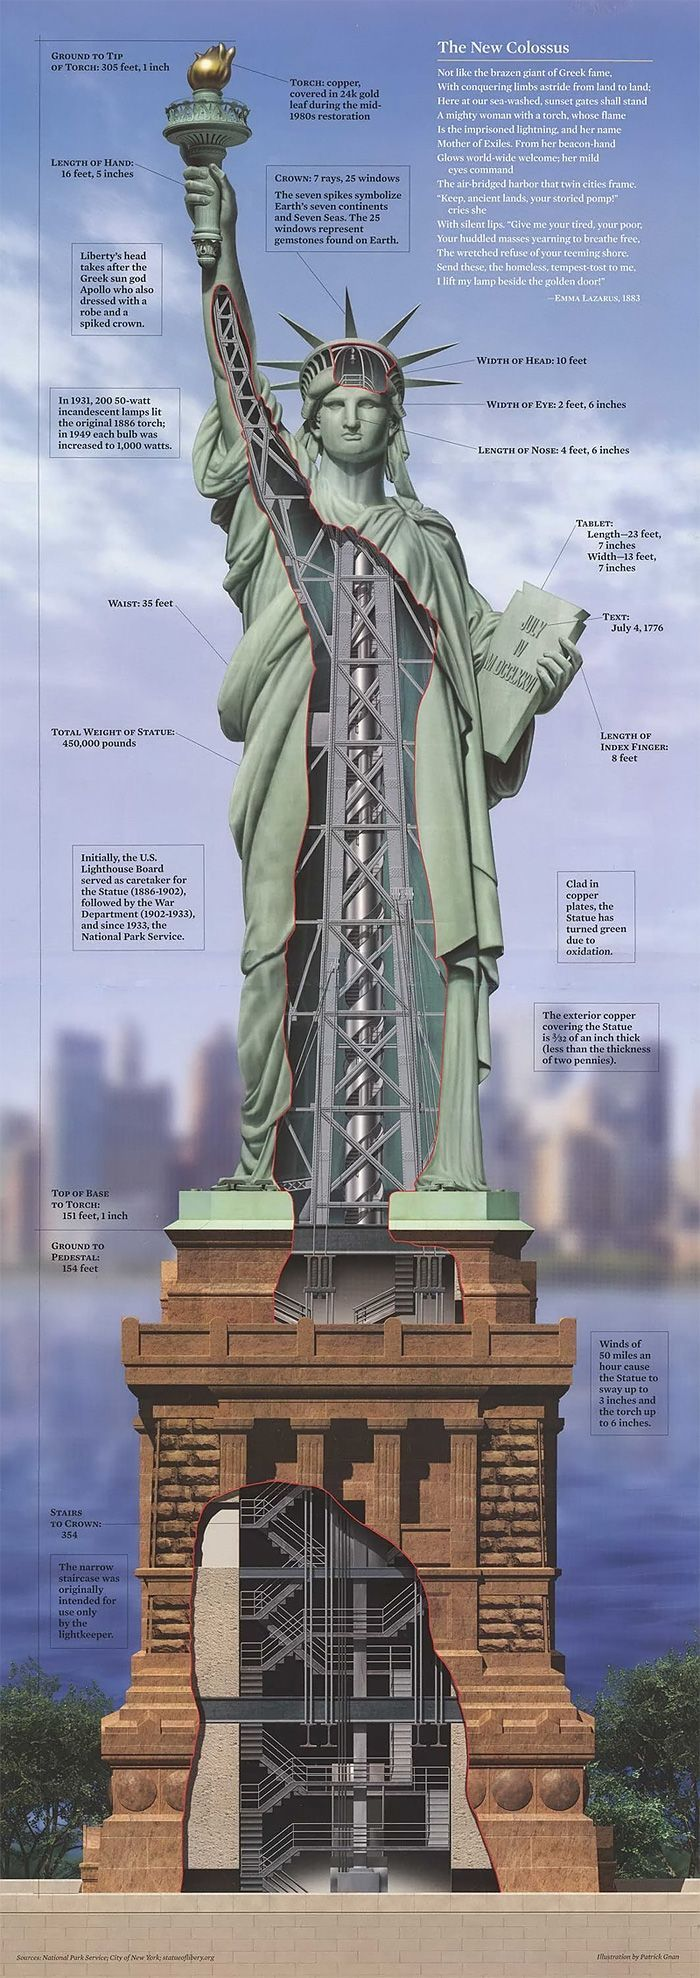 Image detail for -Inside the Statue of Liberty - My Modern Metropolis